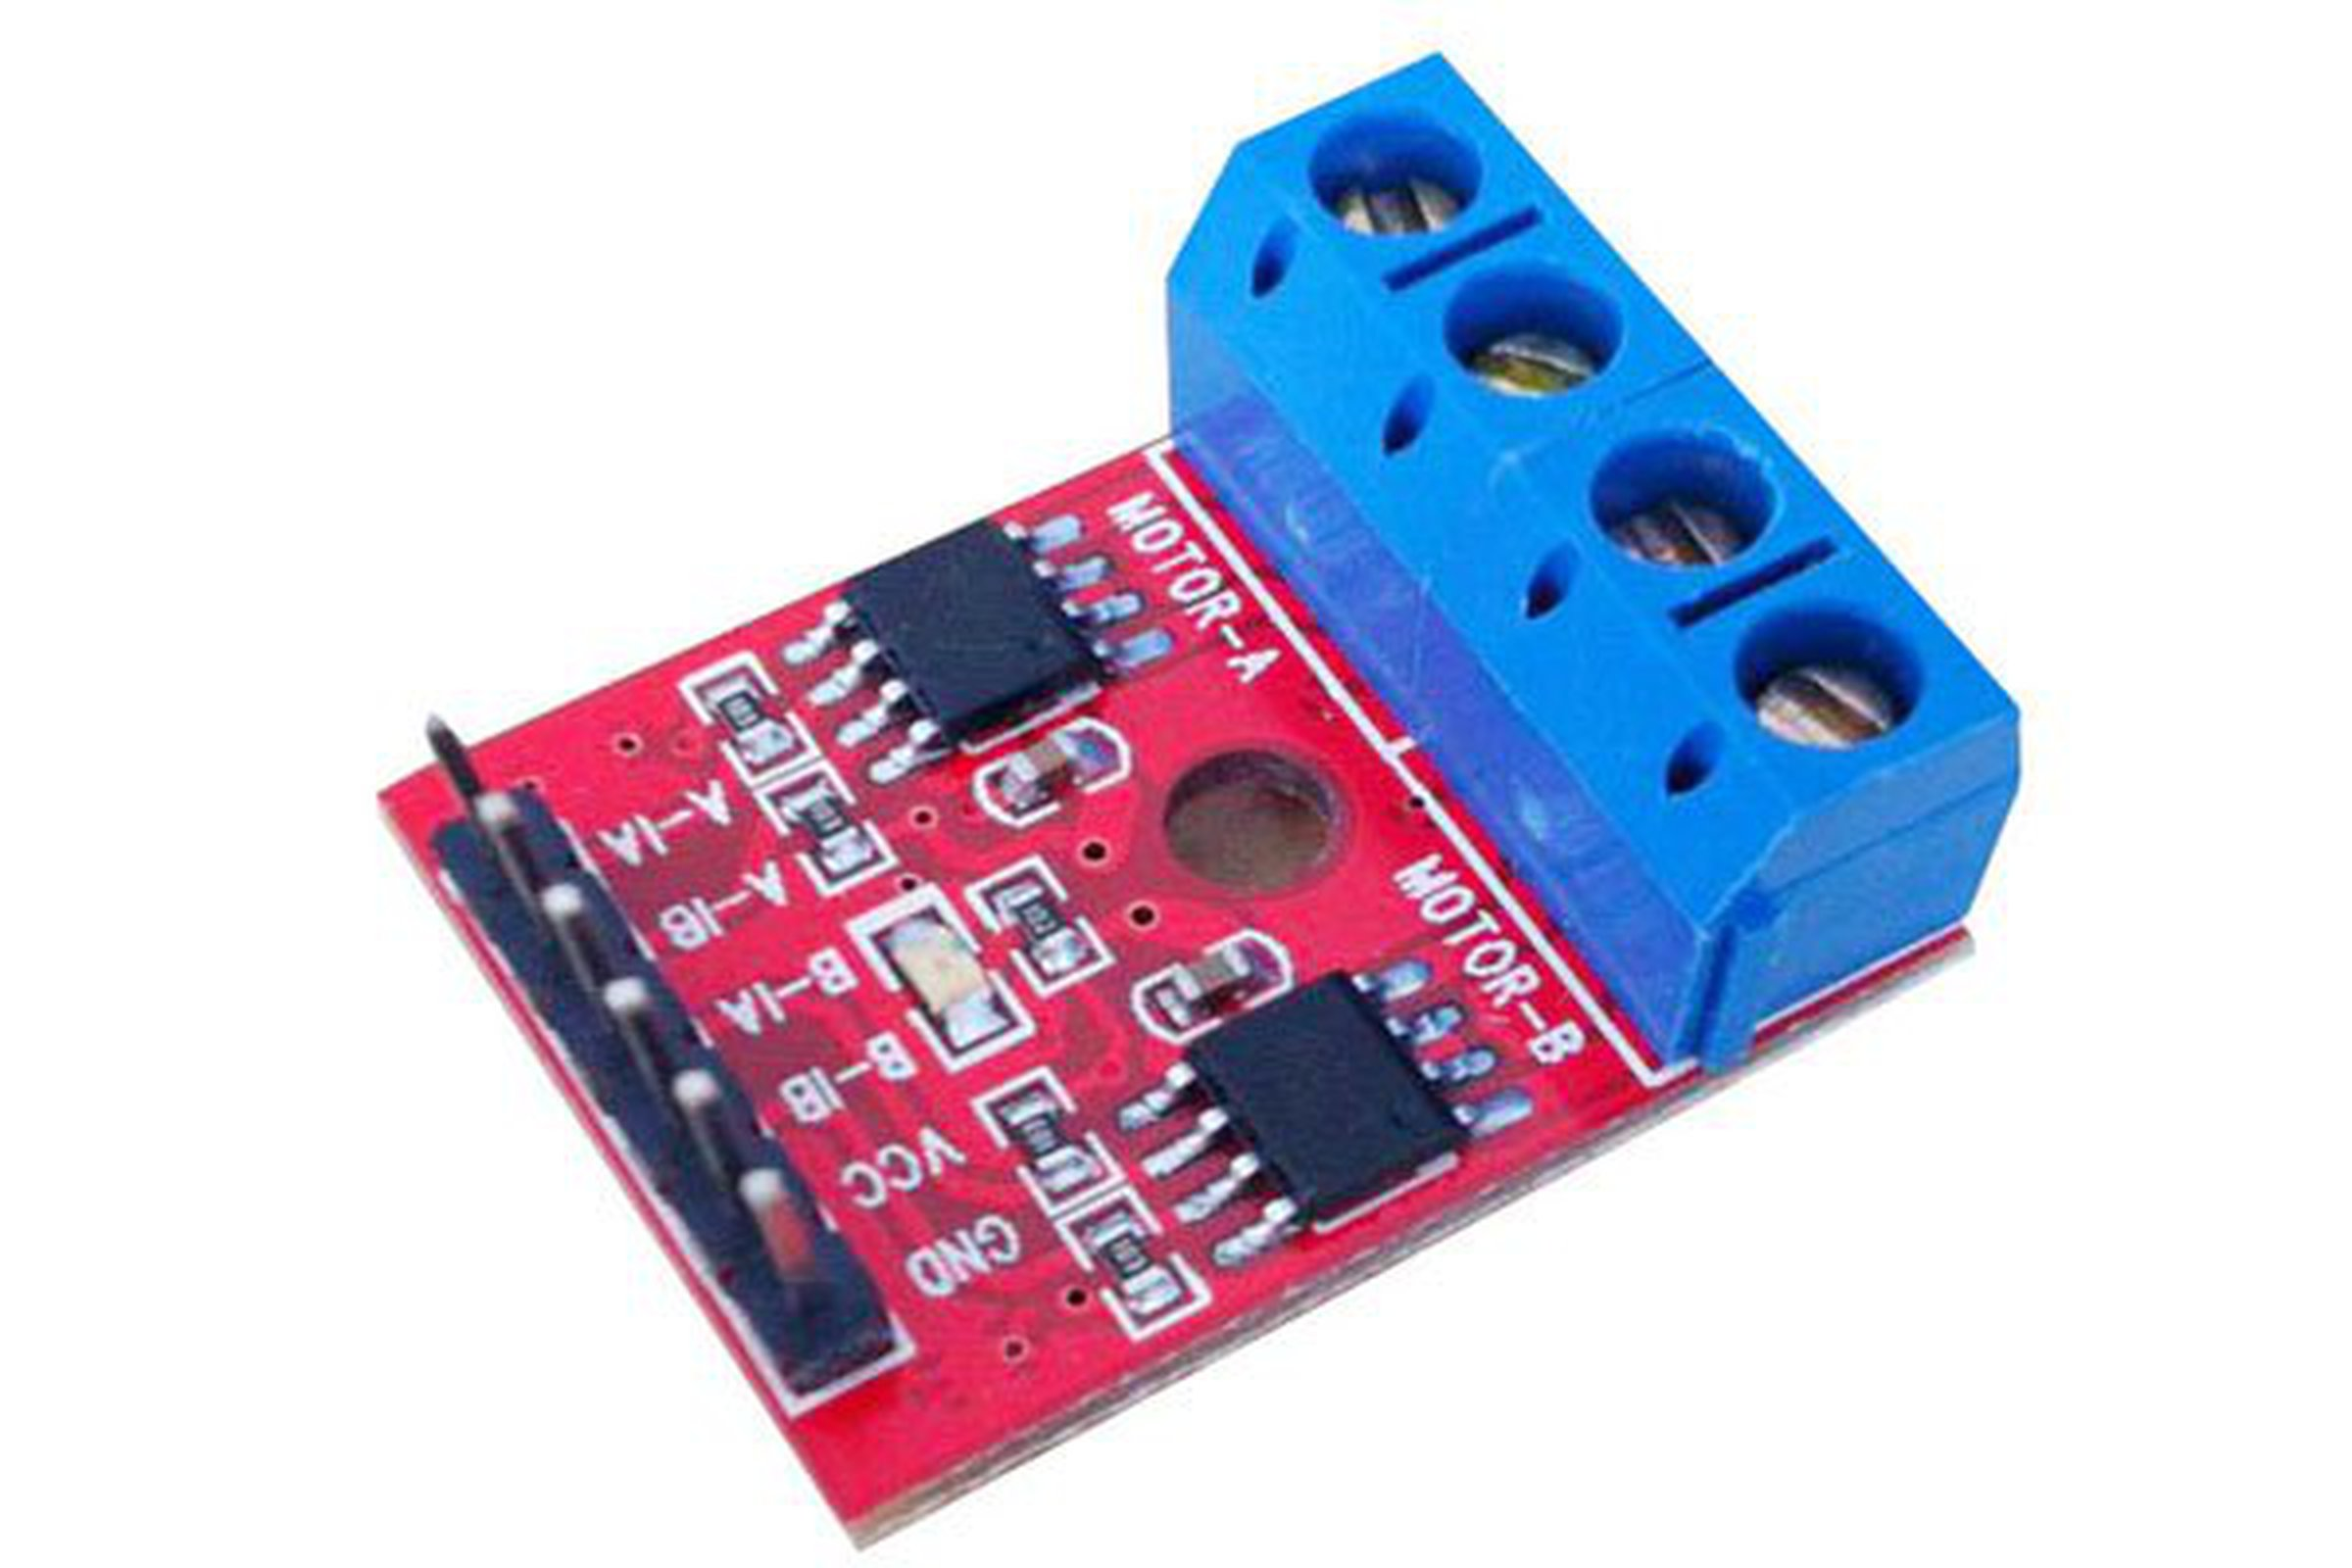 2pc Dc Stepper Motor Driver From Exlene On Tindie